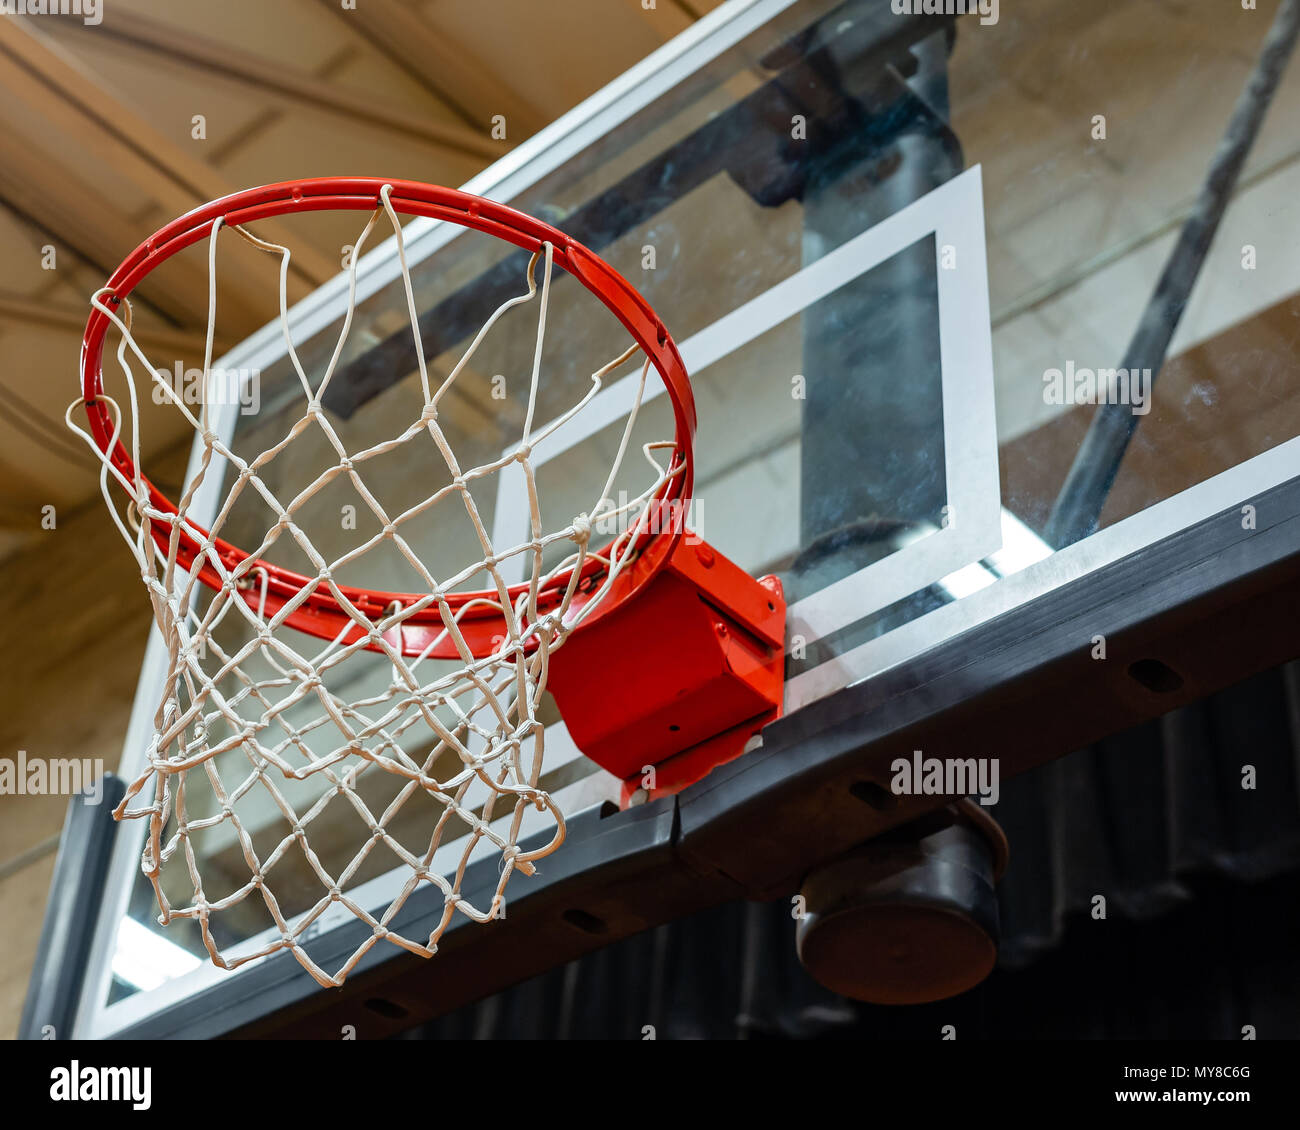 a basketball goal and backboard with lots of handprints on it - Stock Image